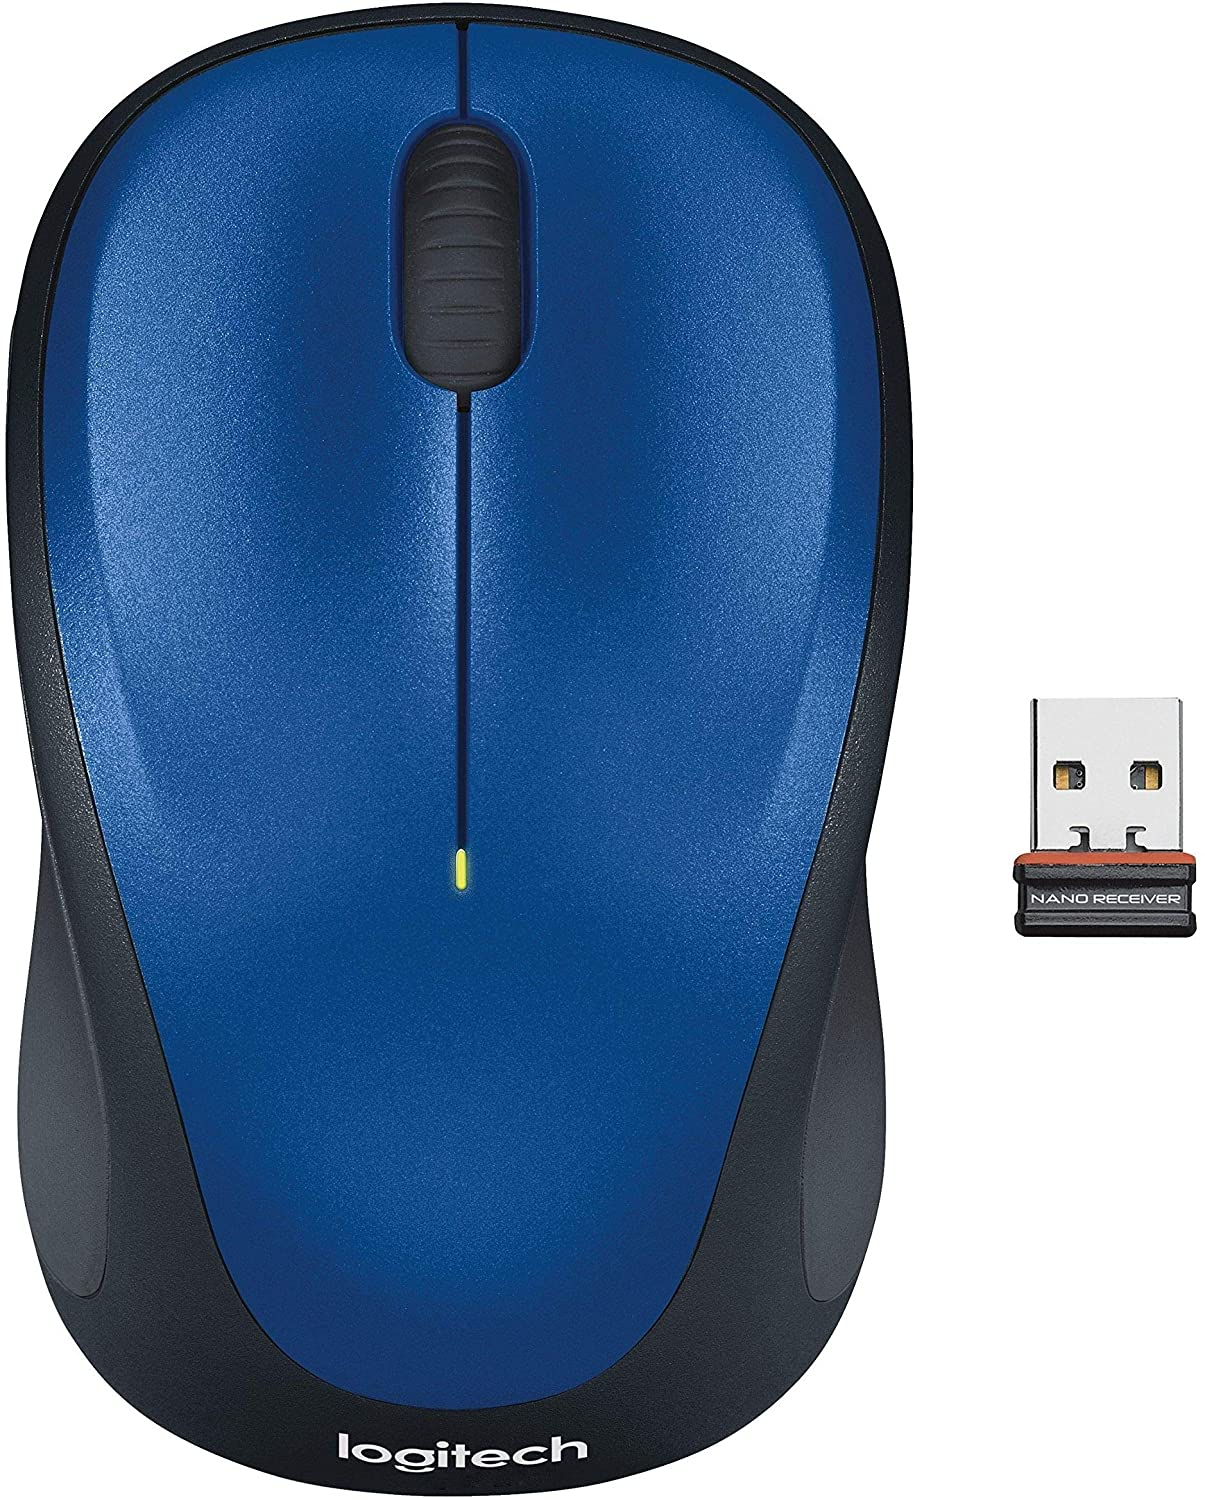 Logitech Wireless Mouse for Windows, Mac and Linux - Blue